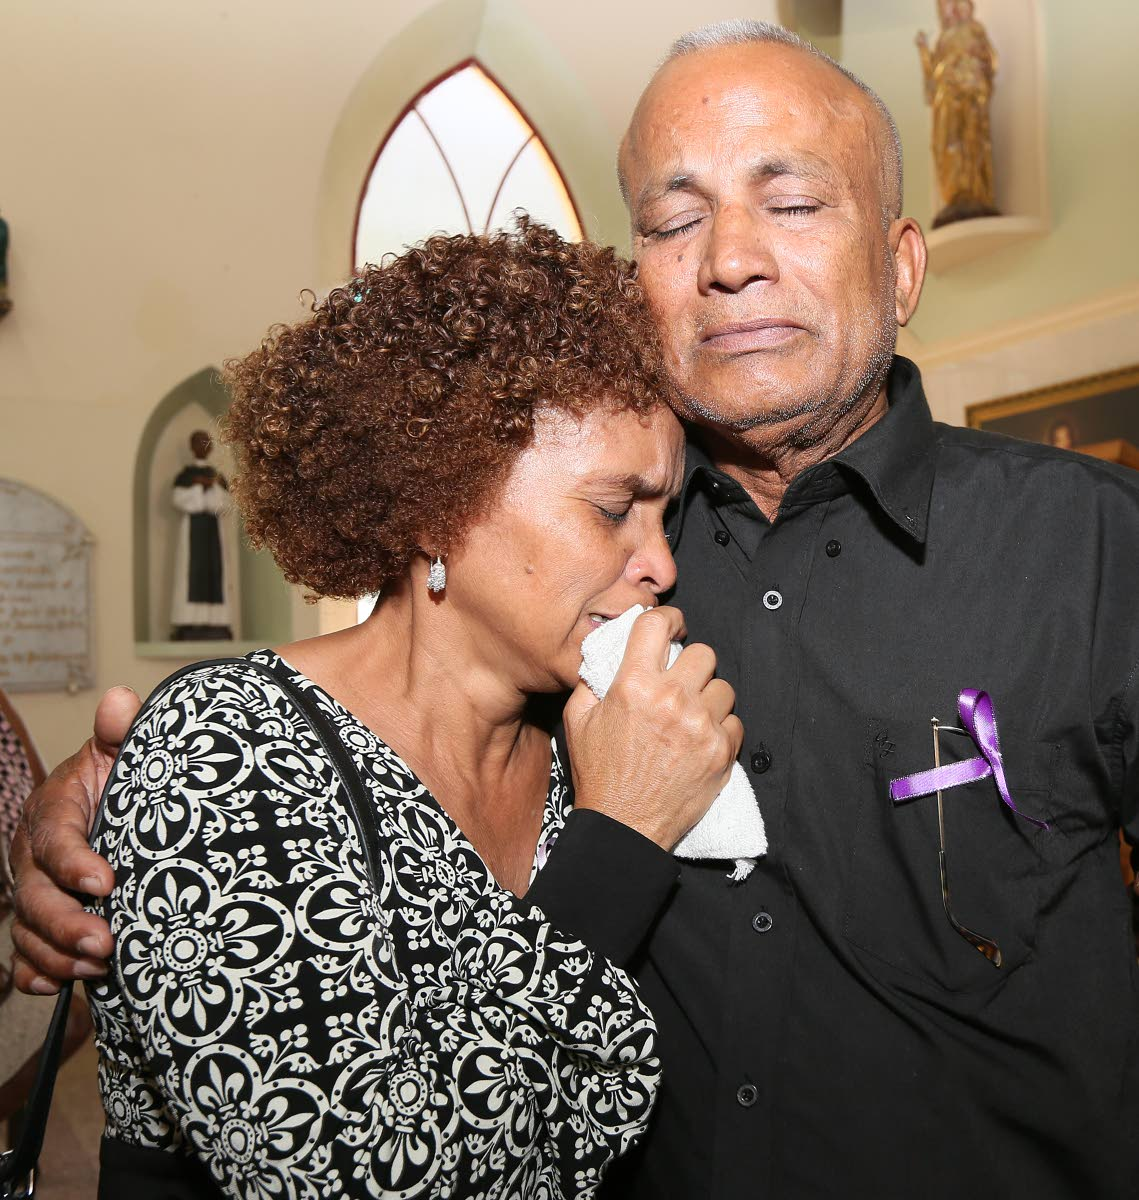 OUR GIRL IS GONE: Raphael Chuniesingh consoles his wife Fabiana yesterday at the funeral for their murdered daughter Christine at the Santa Rosa RC Church in Arima. PHOTO BY AZLAN MOHAMMED